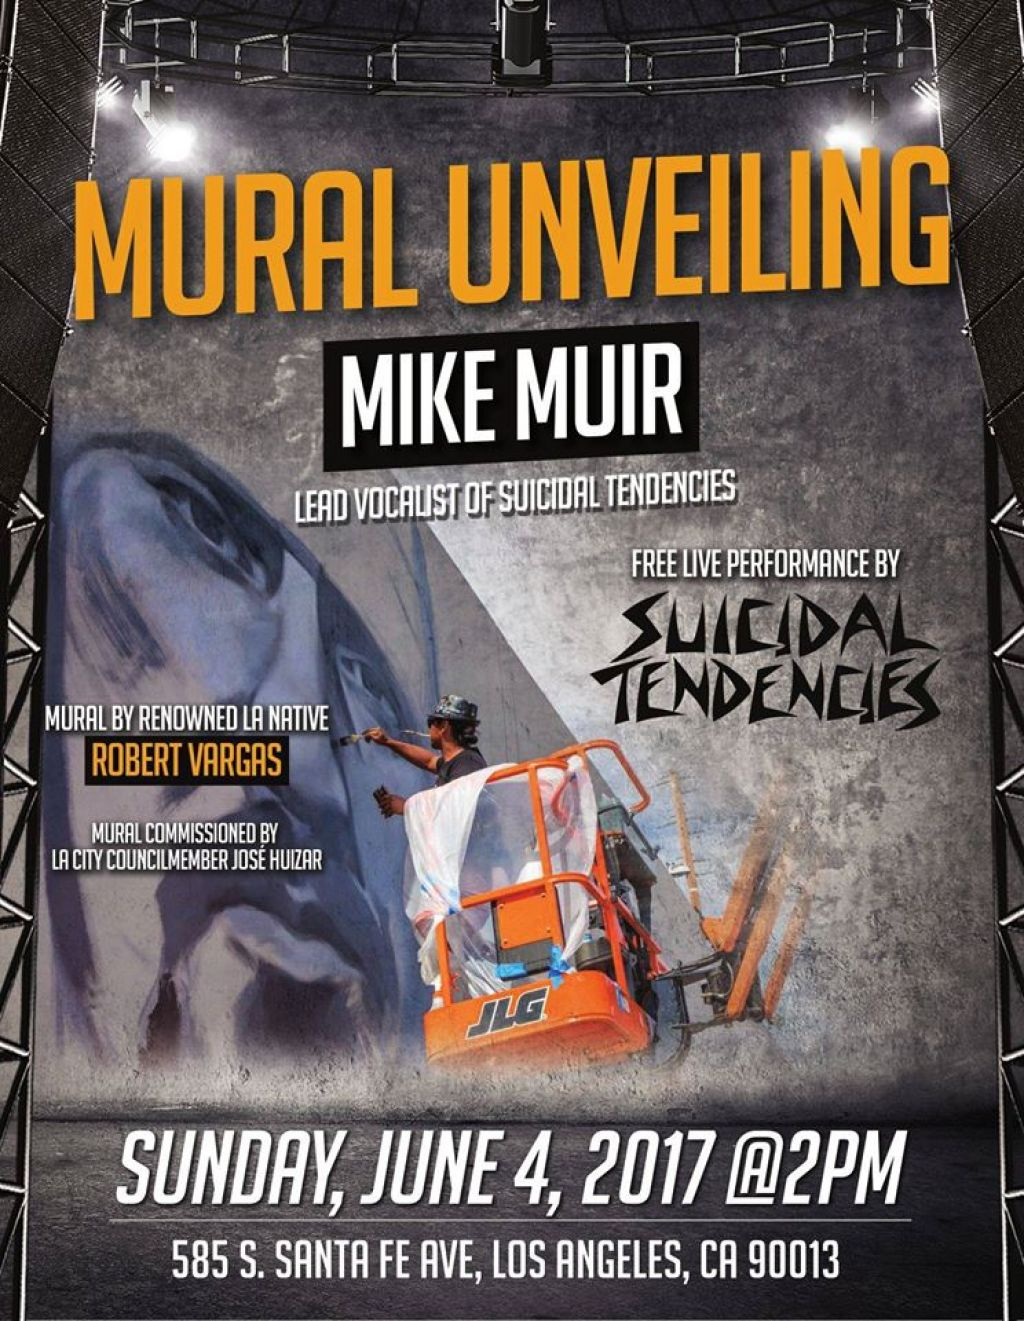 MURAL UNVEIL AND FREE STXTX SHOW DOWNTOWN LA!